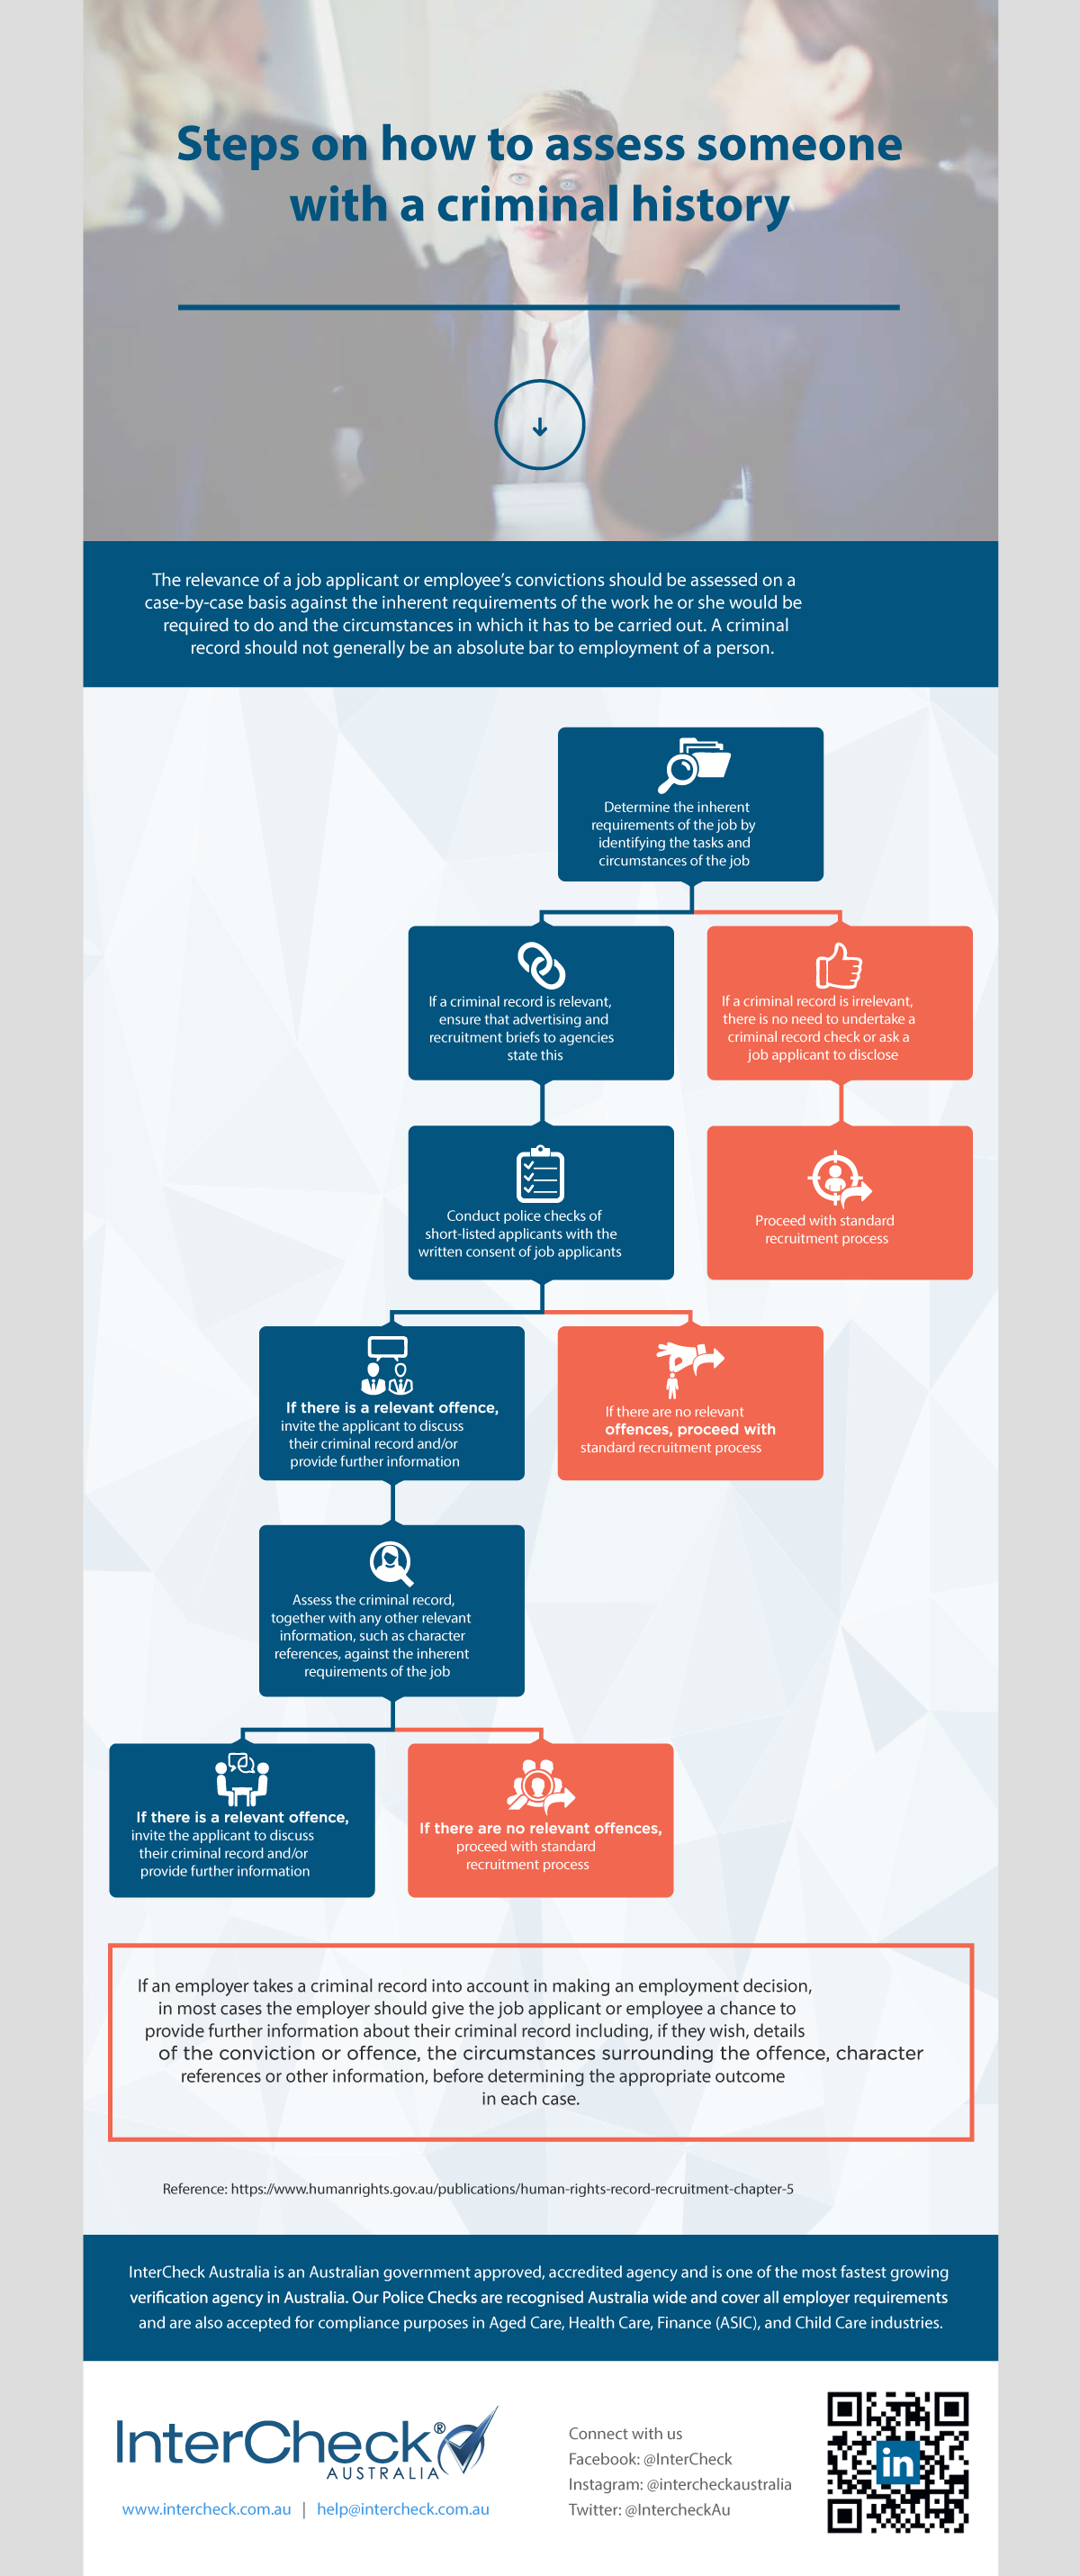 Steps-for-Assessing-the-Inherent-Requirements_Flowchart_revised2